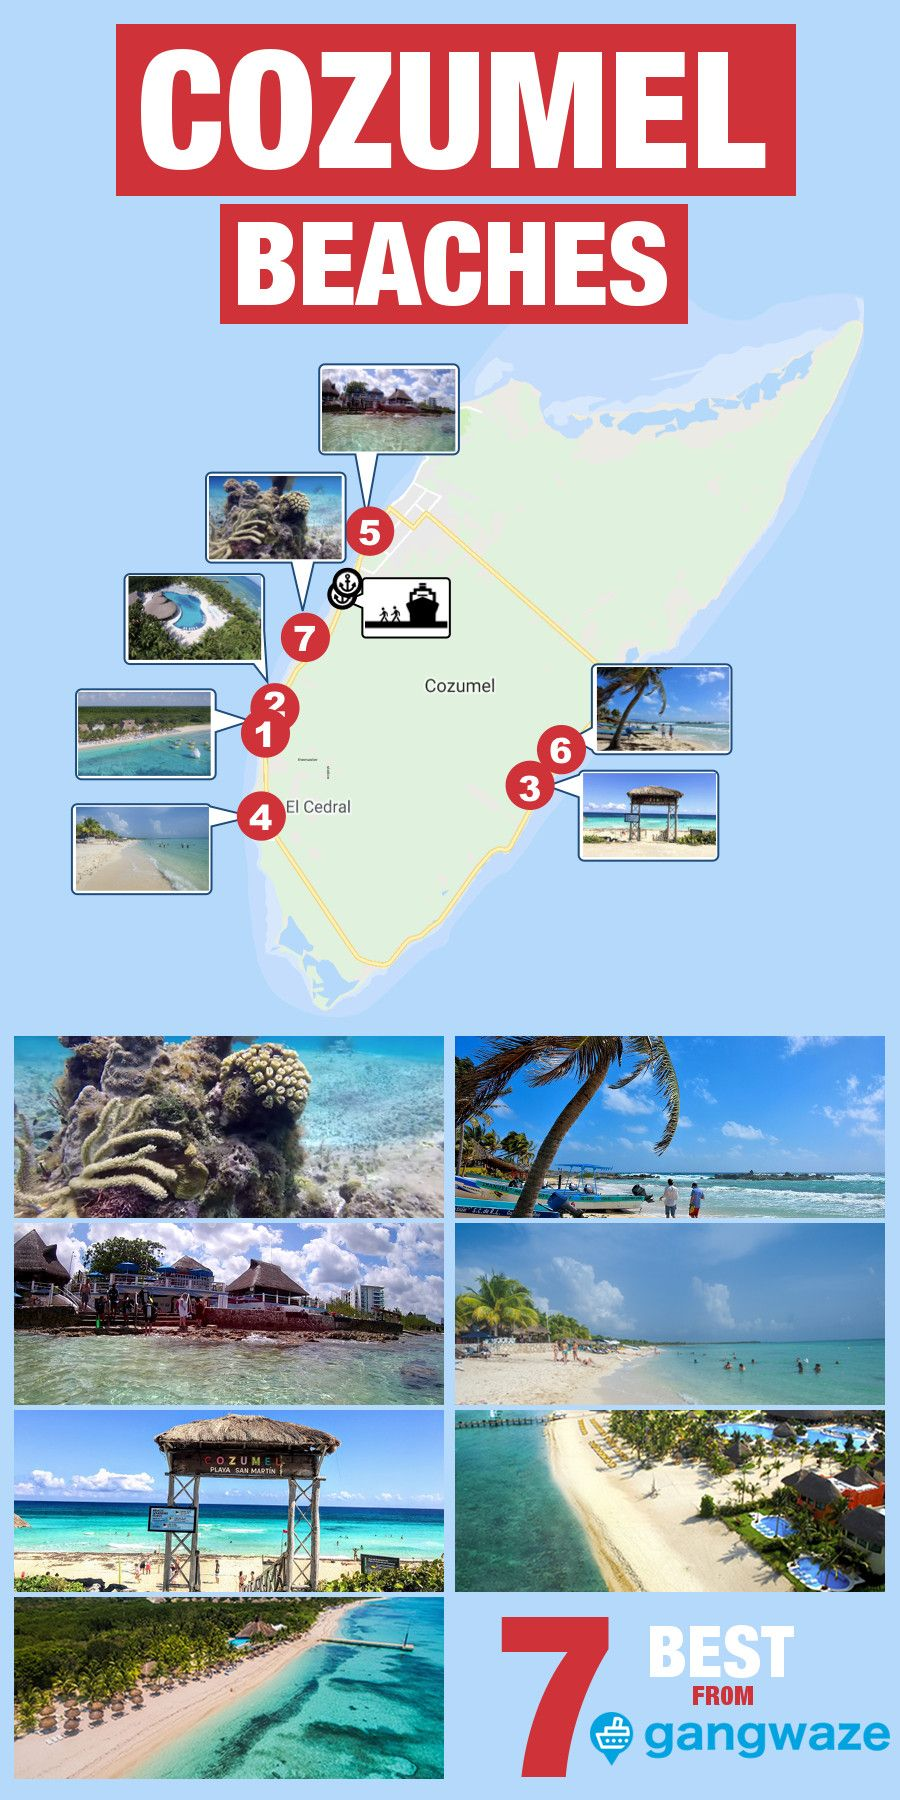 7 Best And Free Beaches Near Cozumel Cruise Port With Images